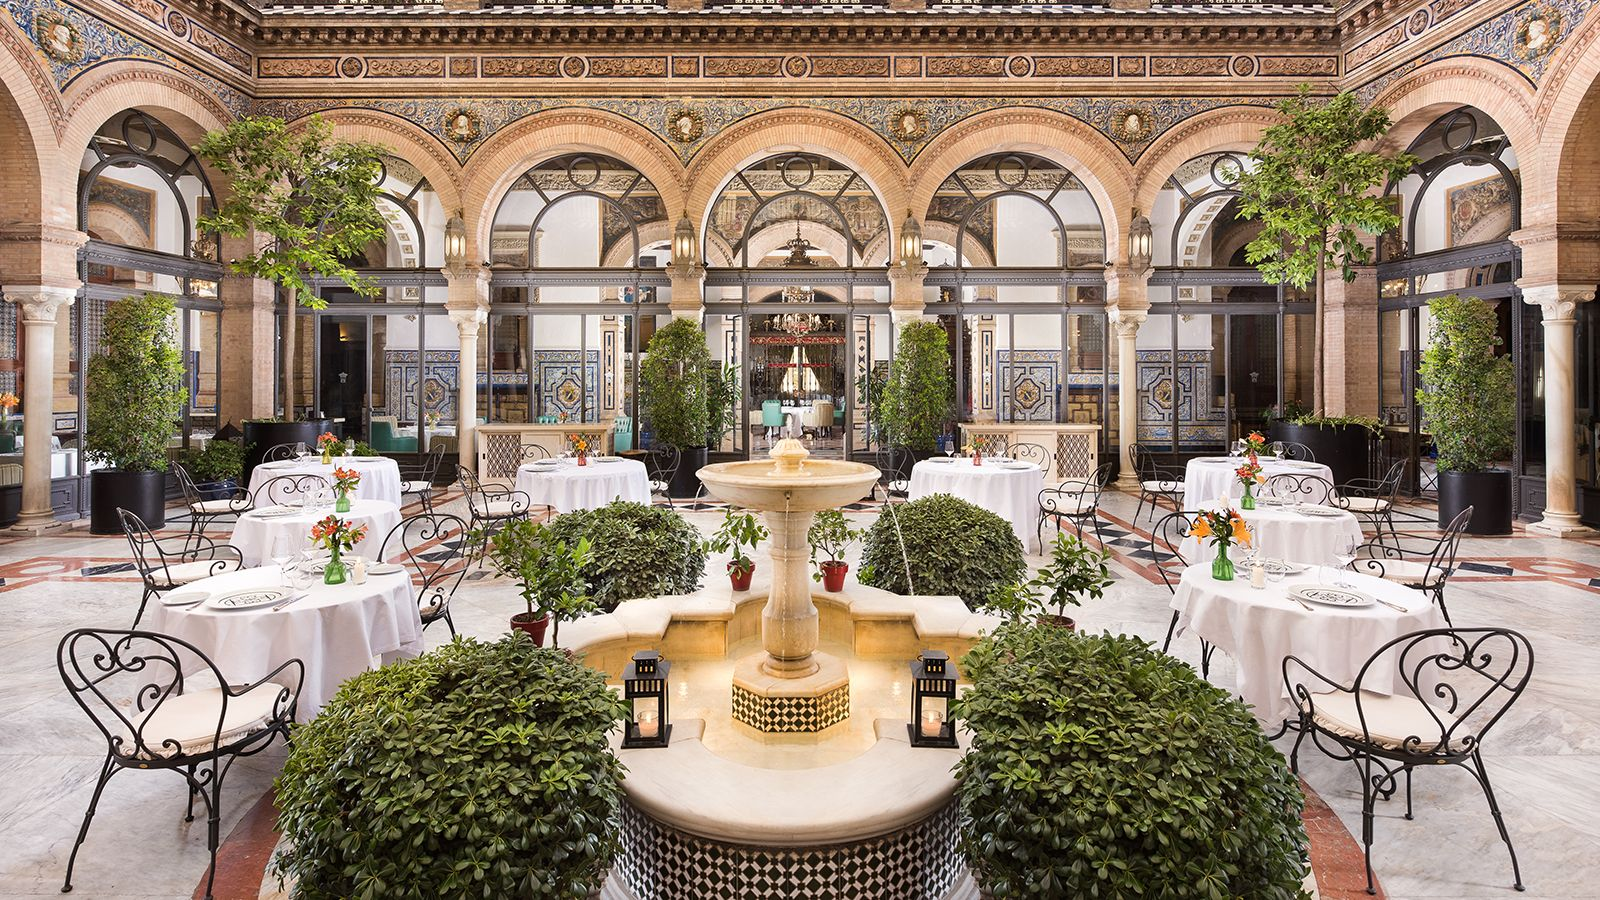 Restaurant San Fernando lies around the colonaded Andalusian patio.